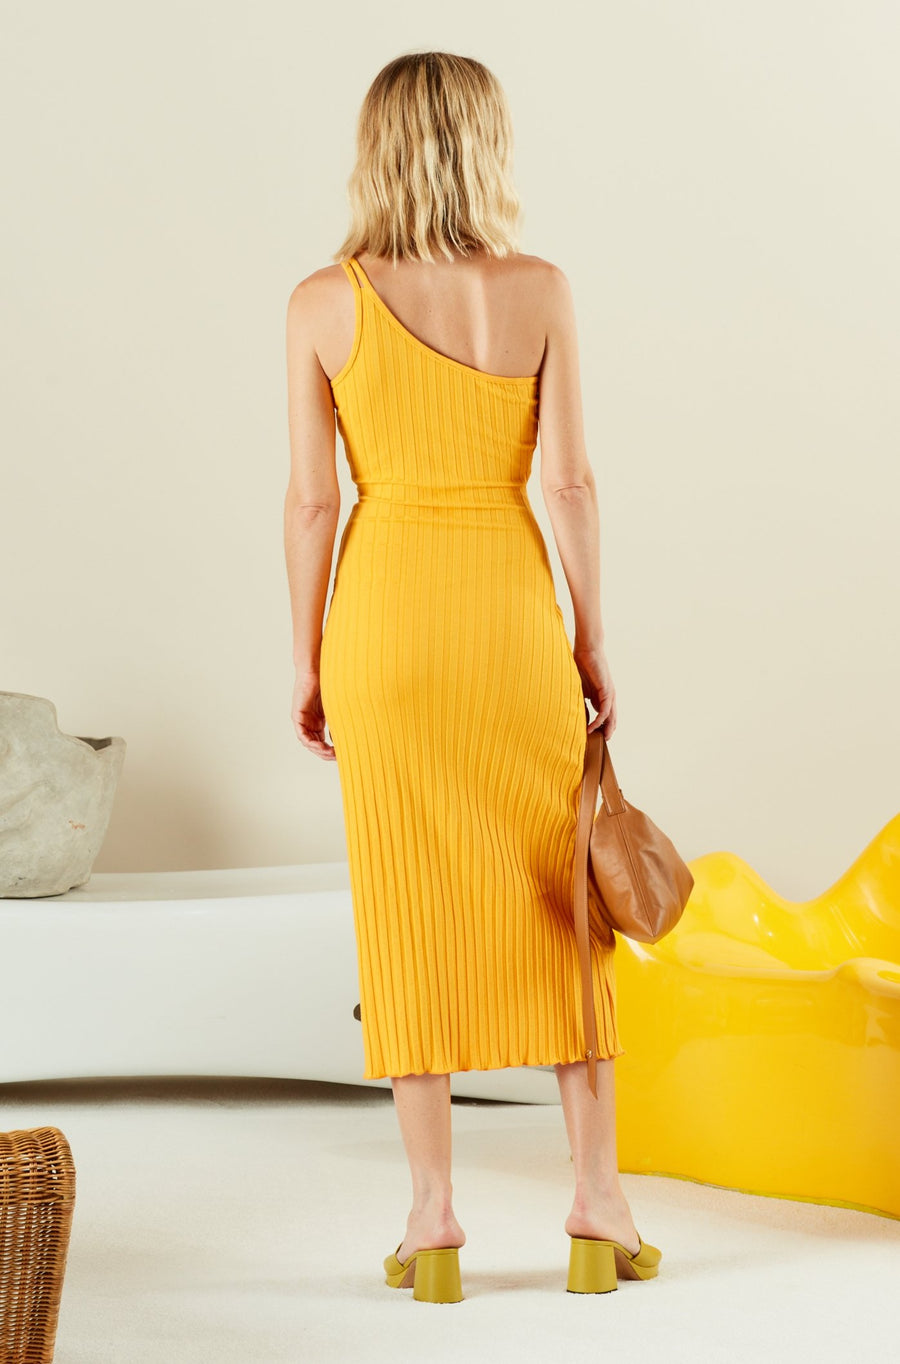 OLINE DRESS IN SUNSET ORANGE